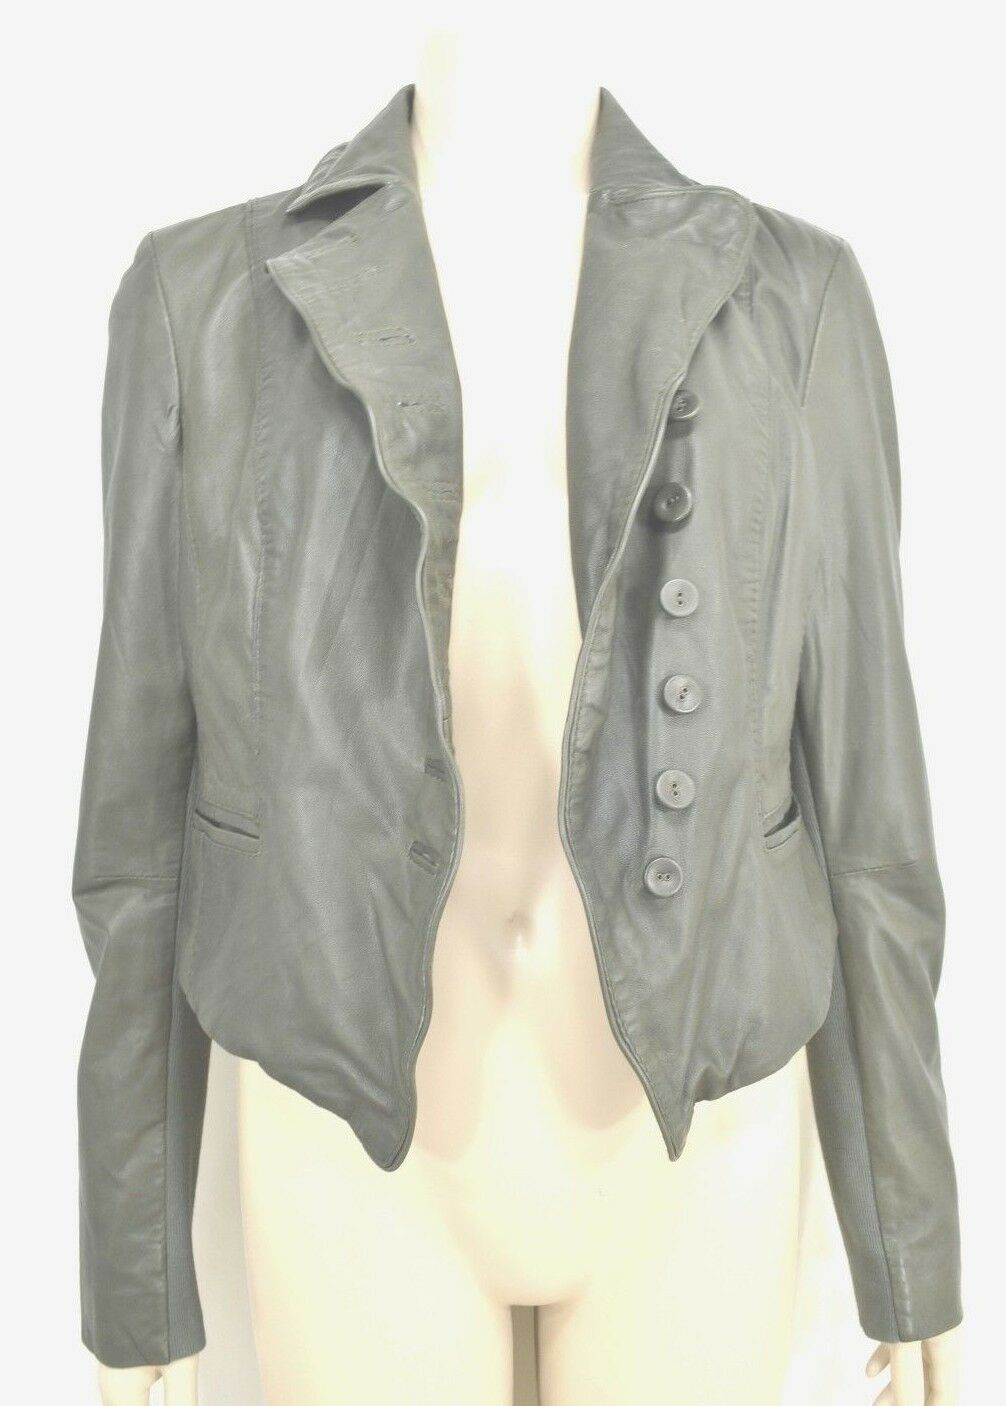 MUUBAA lambskin soft leather jacket SZ 8 Moss Army Gray asymmetric buttoned image 2